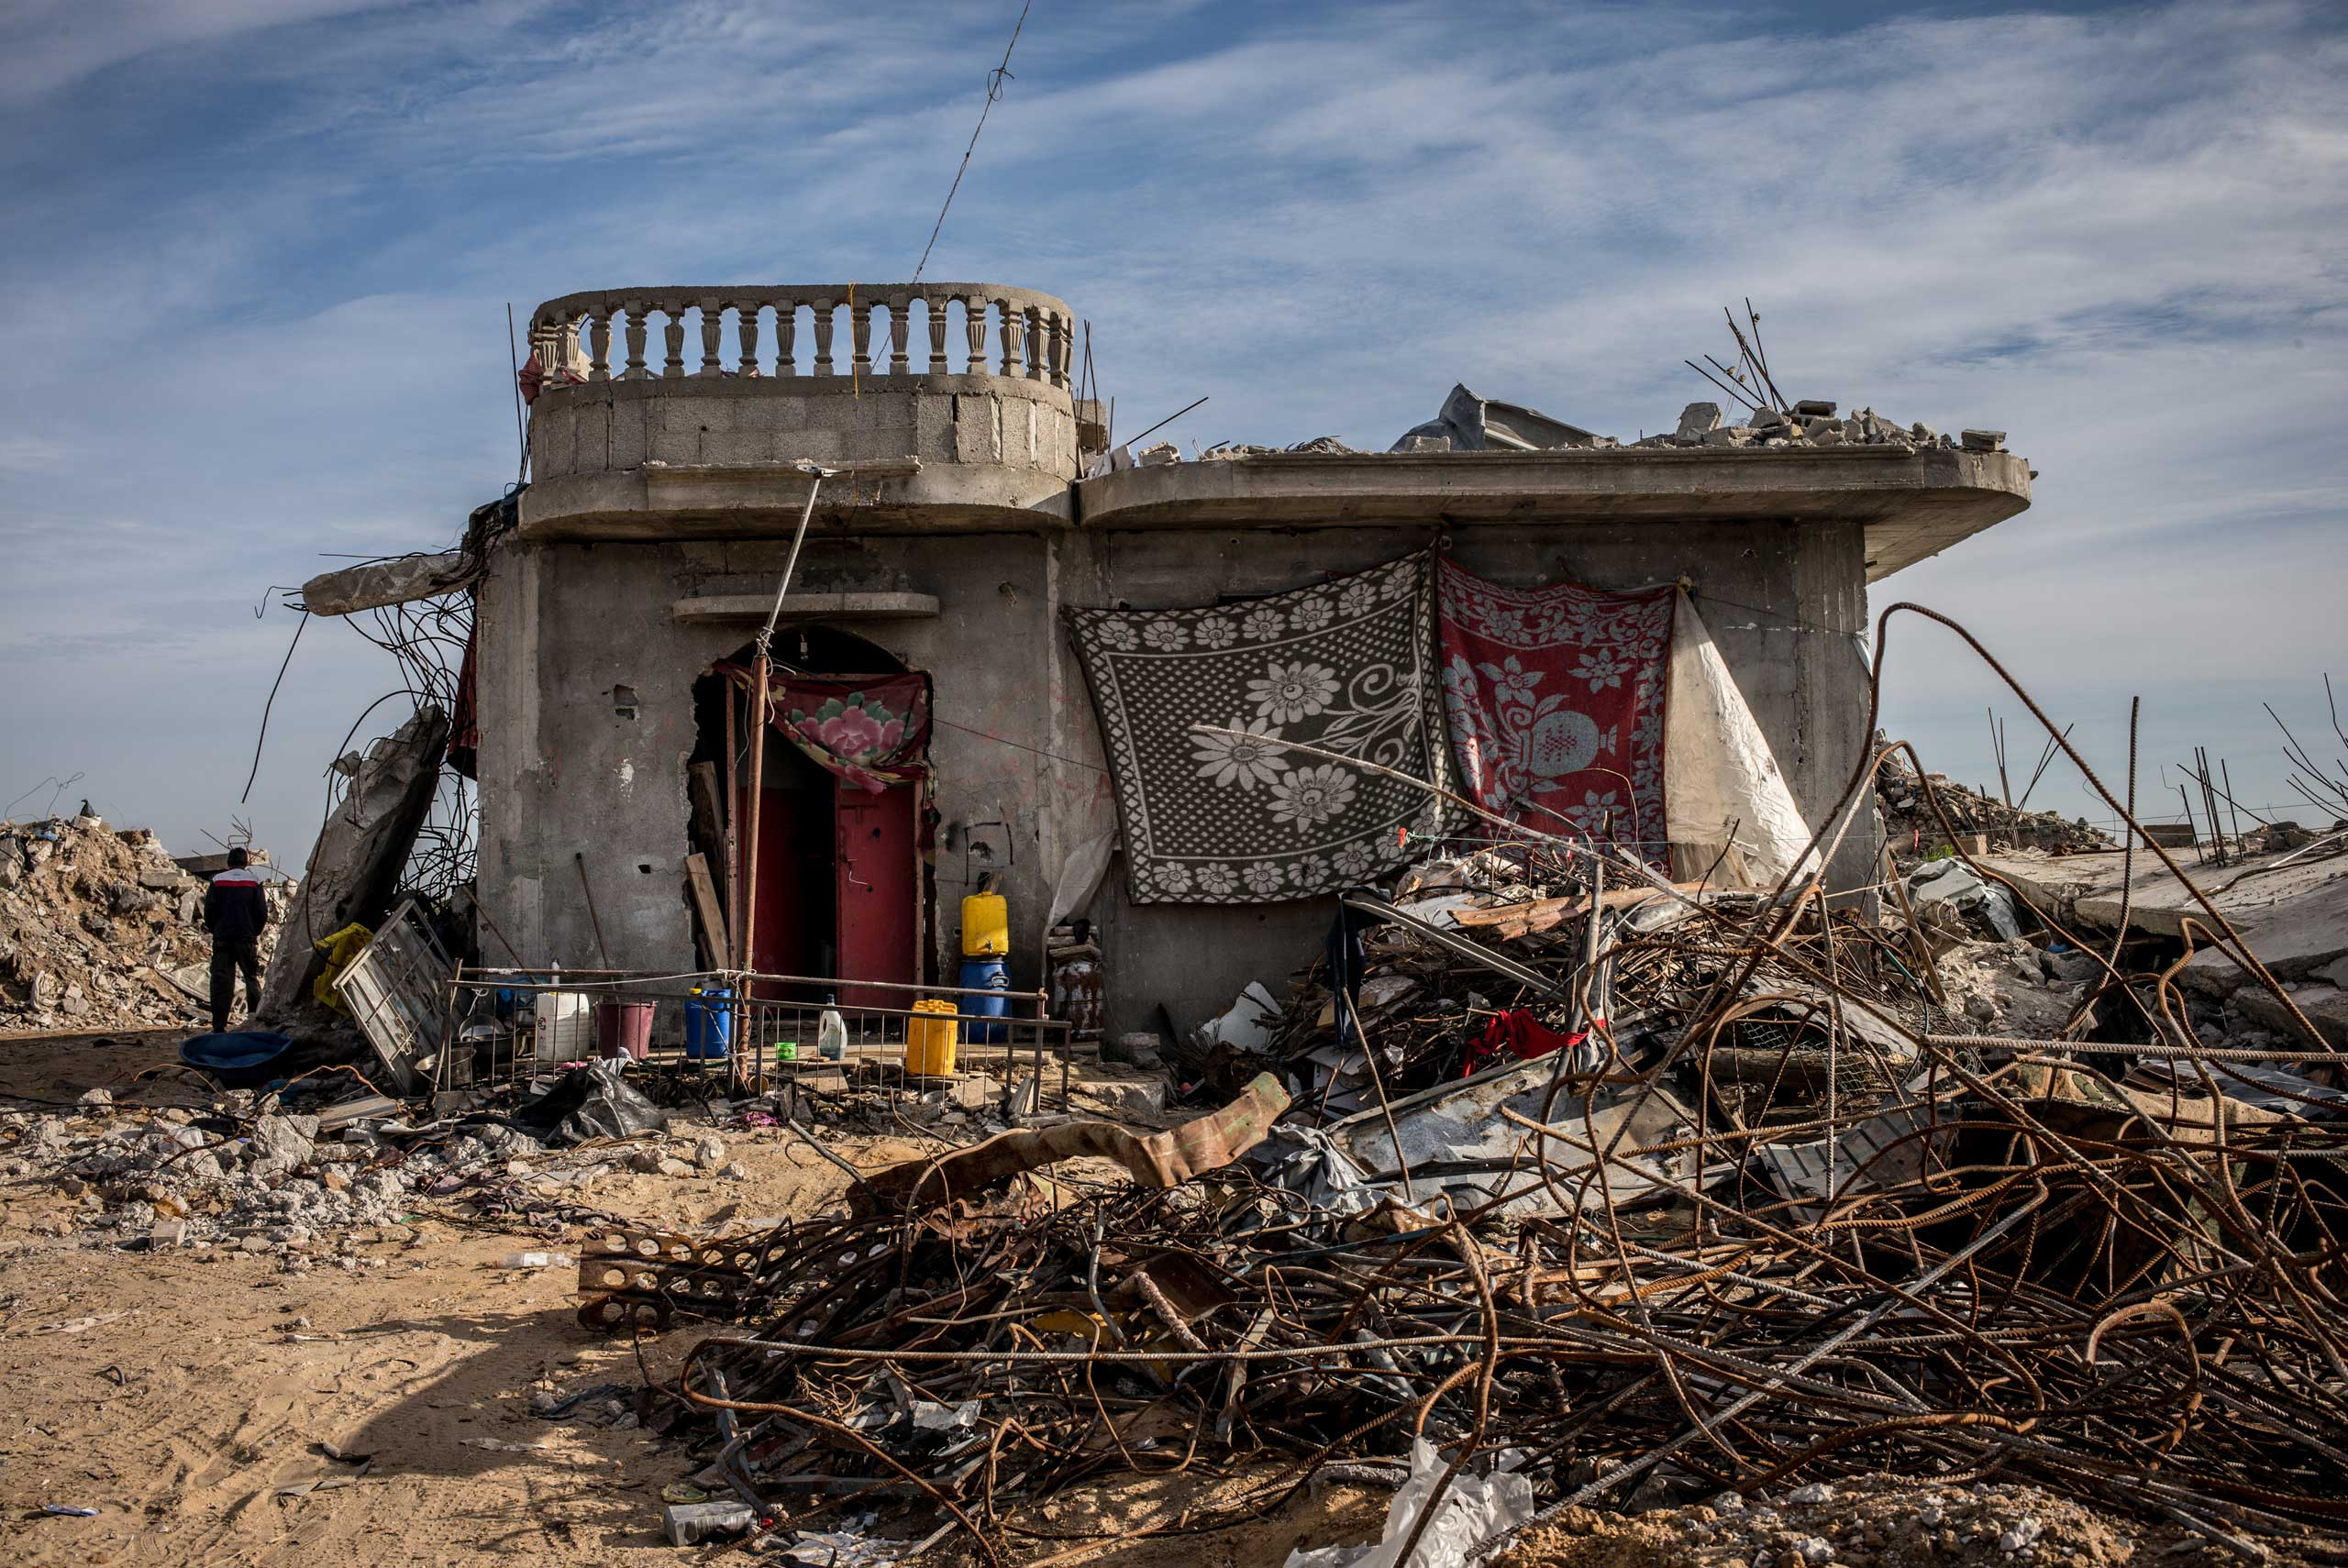 A house resisted the shelling in the Khuza'a area, in the southern Gaza Strip. Colorful blankets cover the wall and part of the entrance. The Gaza Strip, December 2014.